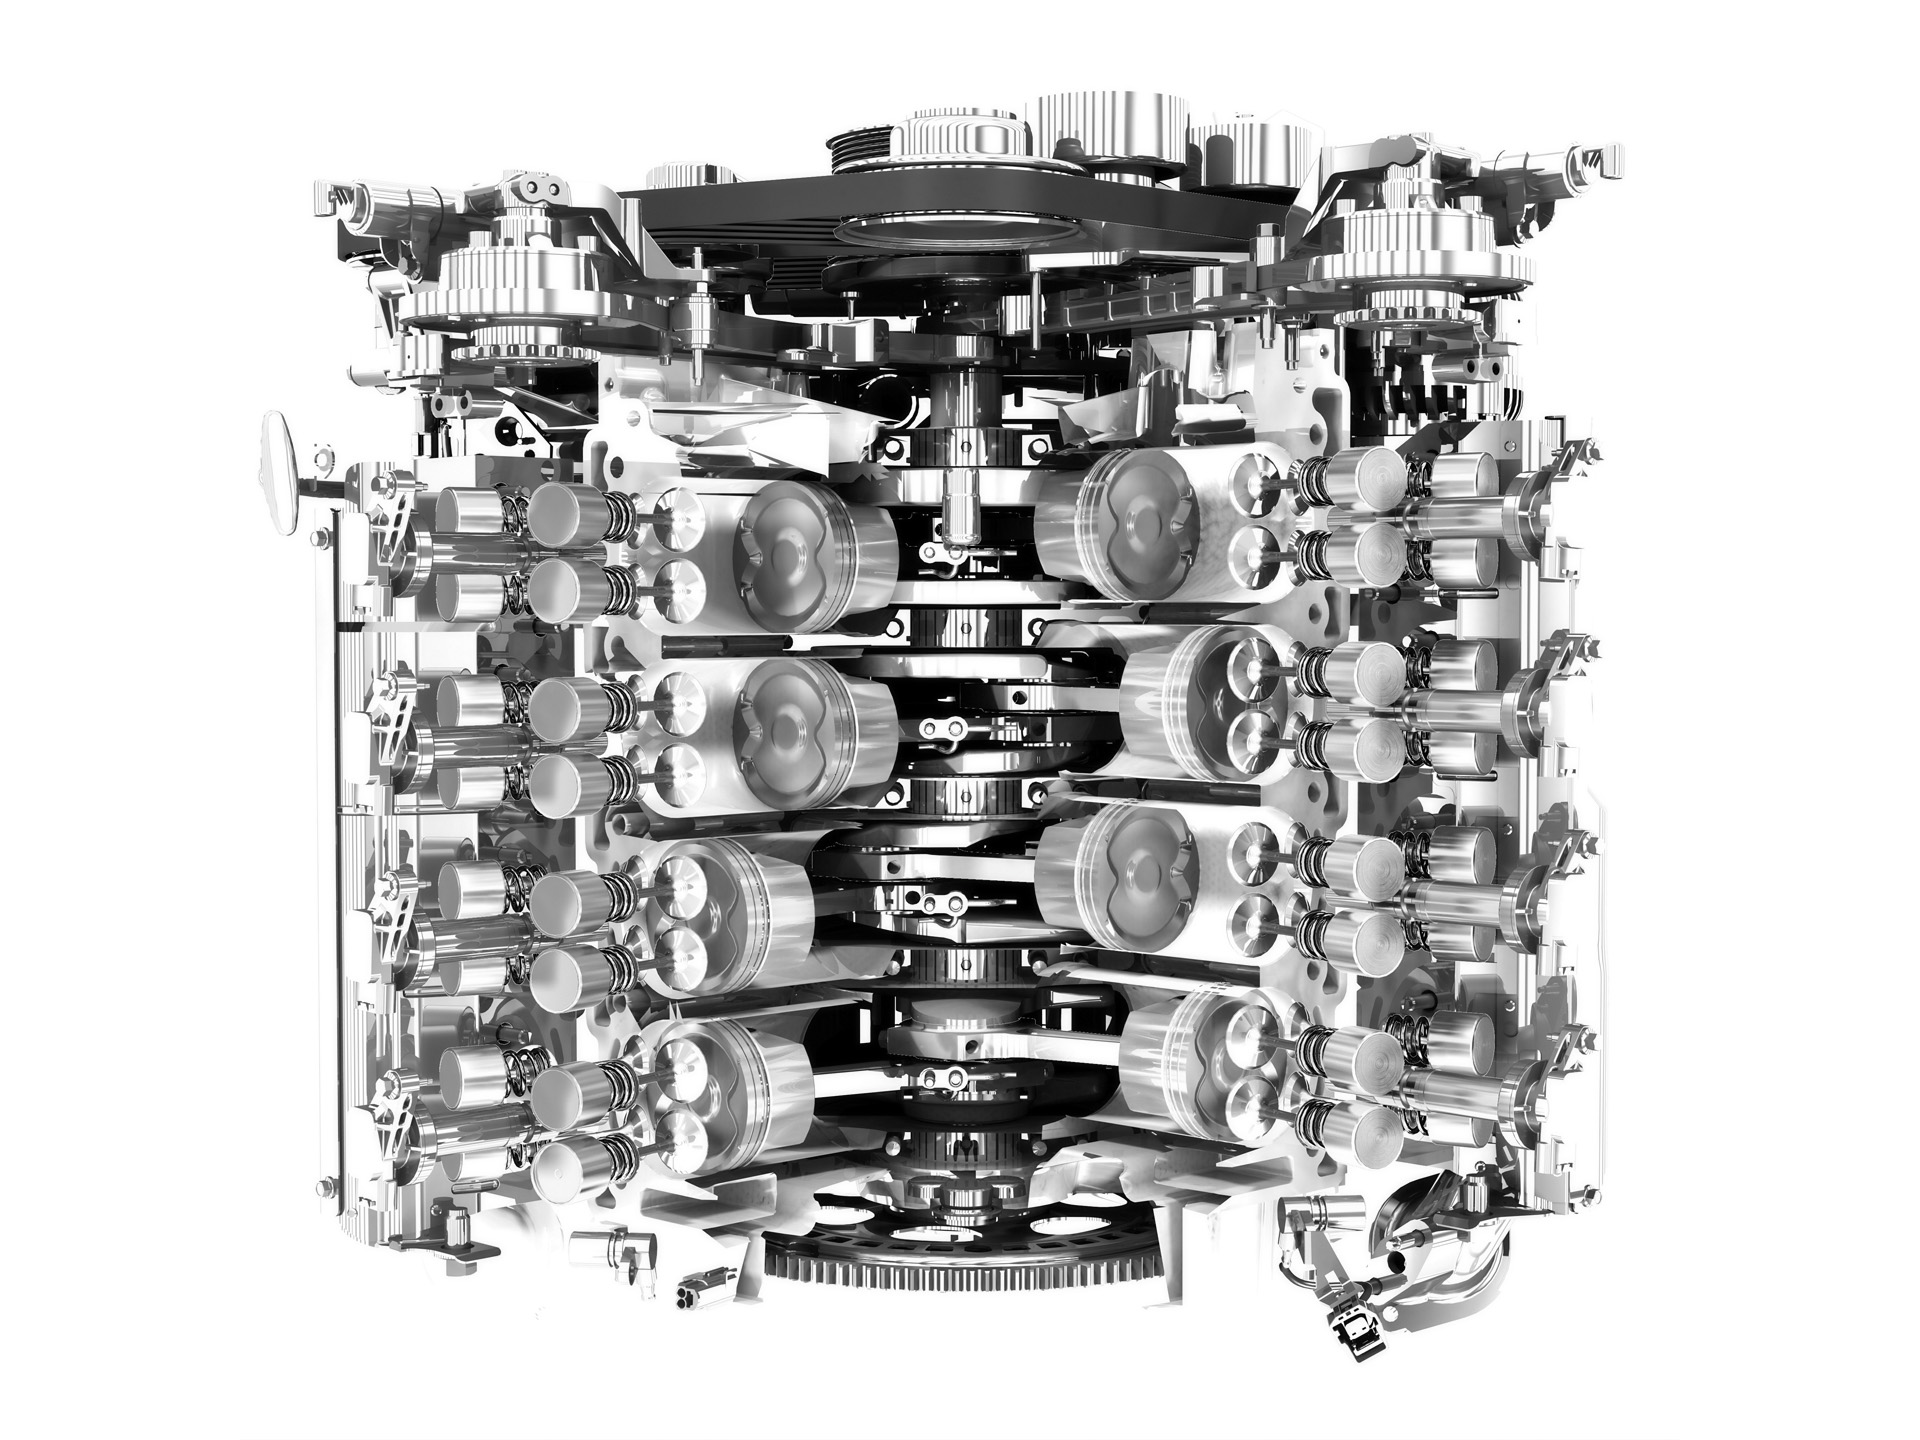 Sample U1097 Engine